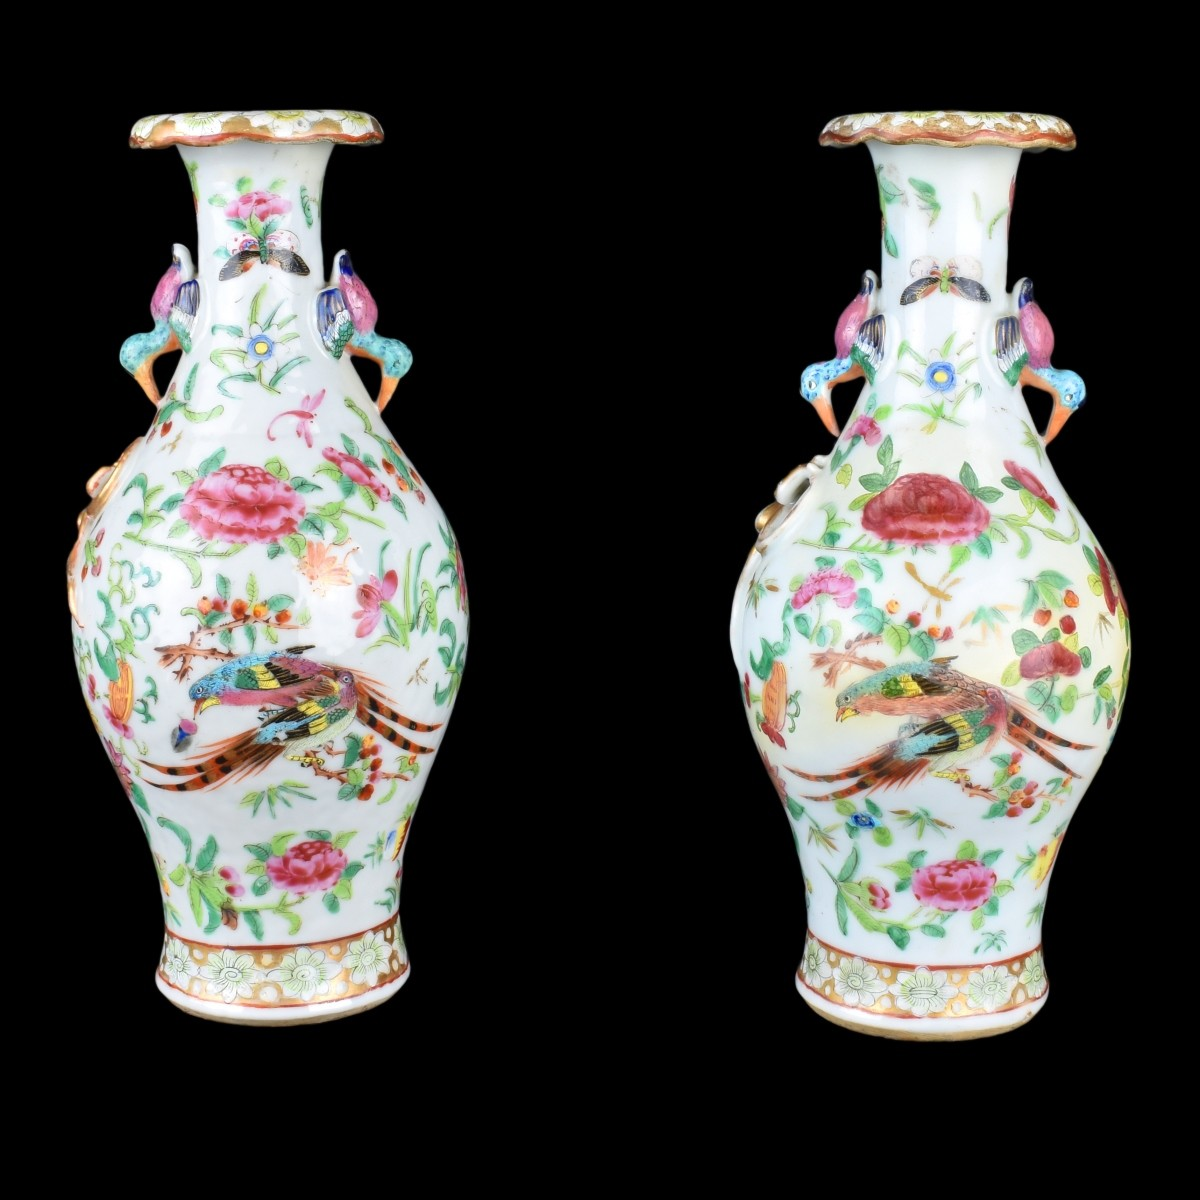 Pair of Chinese Famille Rose Export Vases